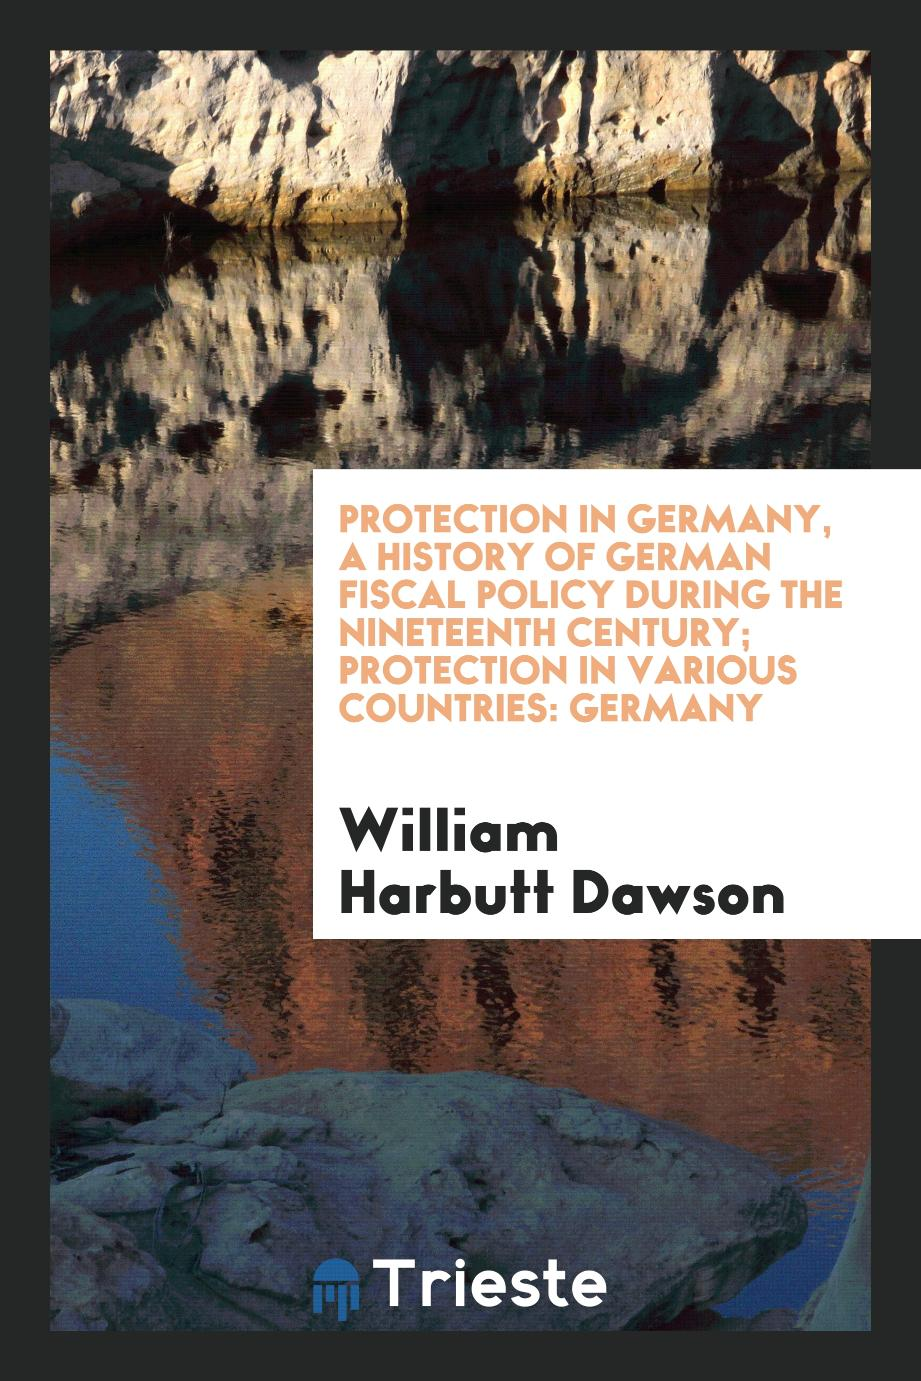 Protection in Germany, a history of German fiscal policy during the nineteenth century; Protection in various countries: Germany